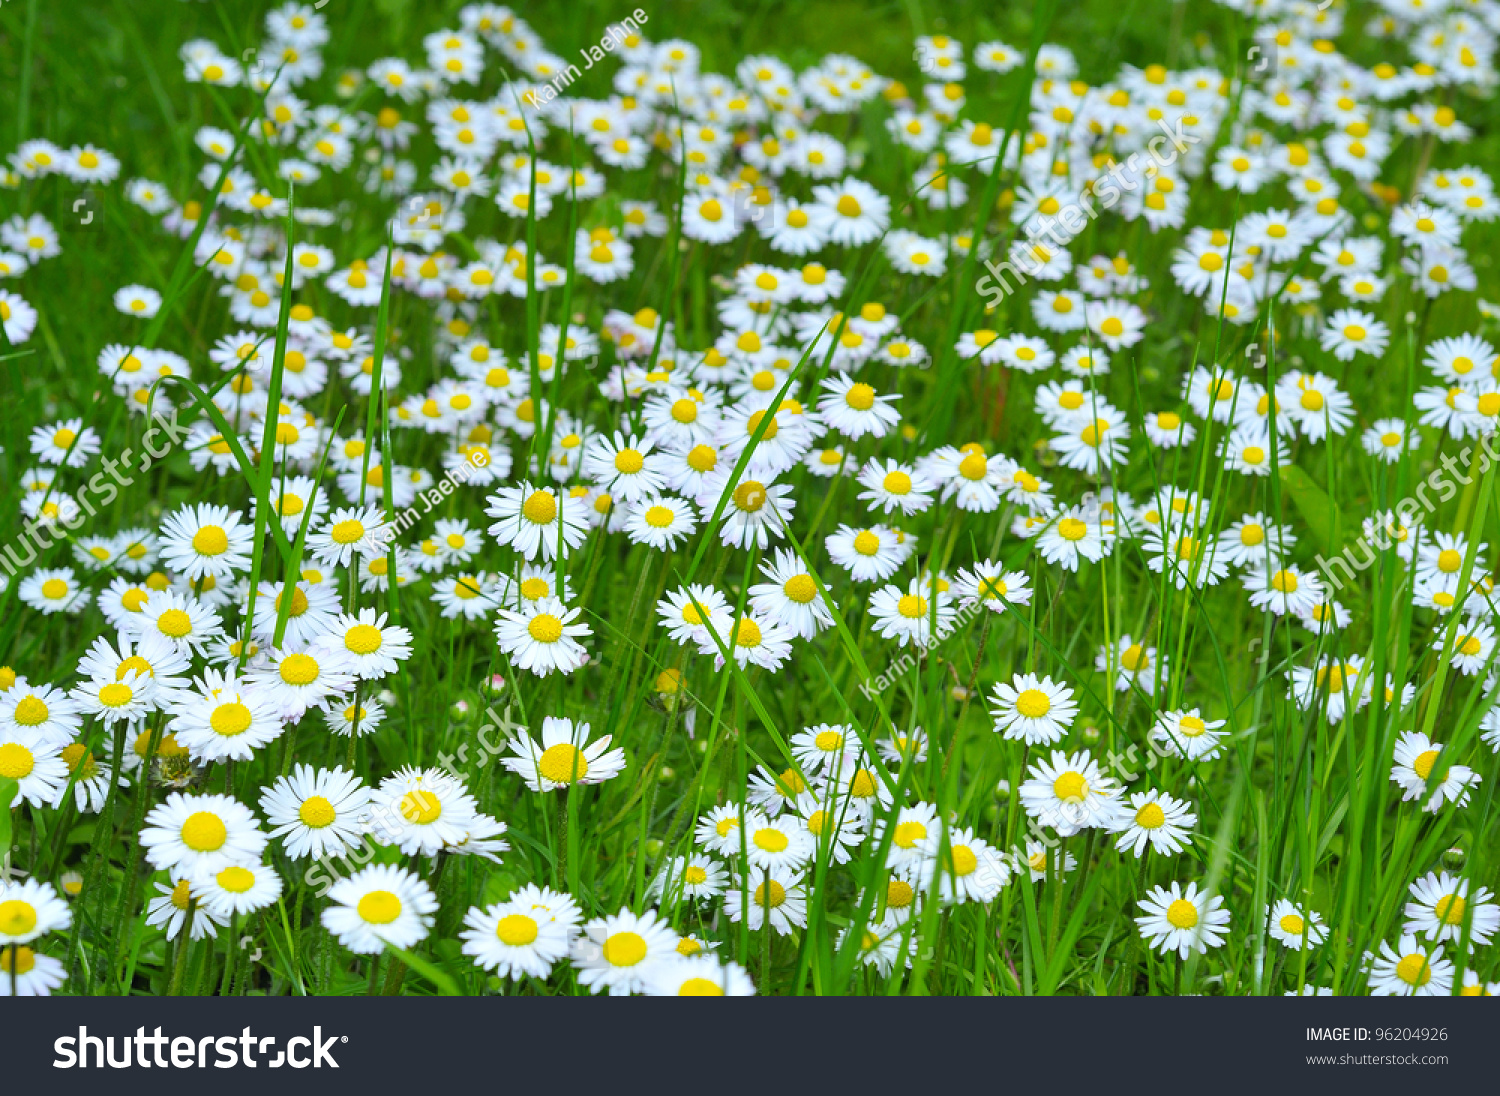 Field daisy flowers stock photo royalty free 96204926 shutterstock field of daisy flowers izmirmasajfo